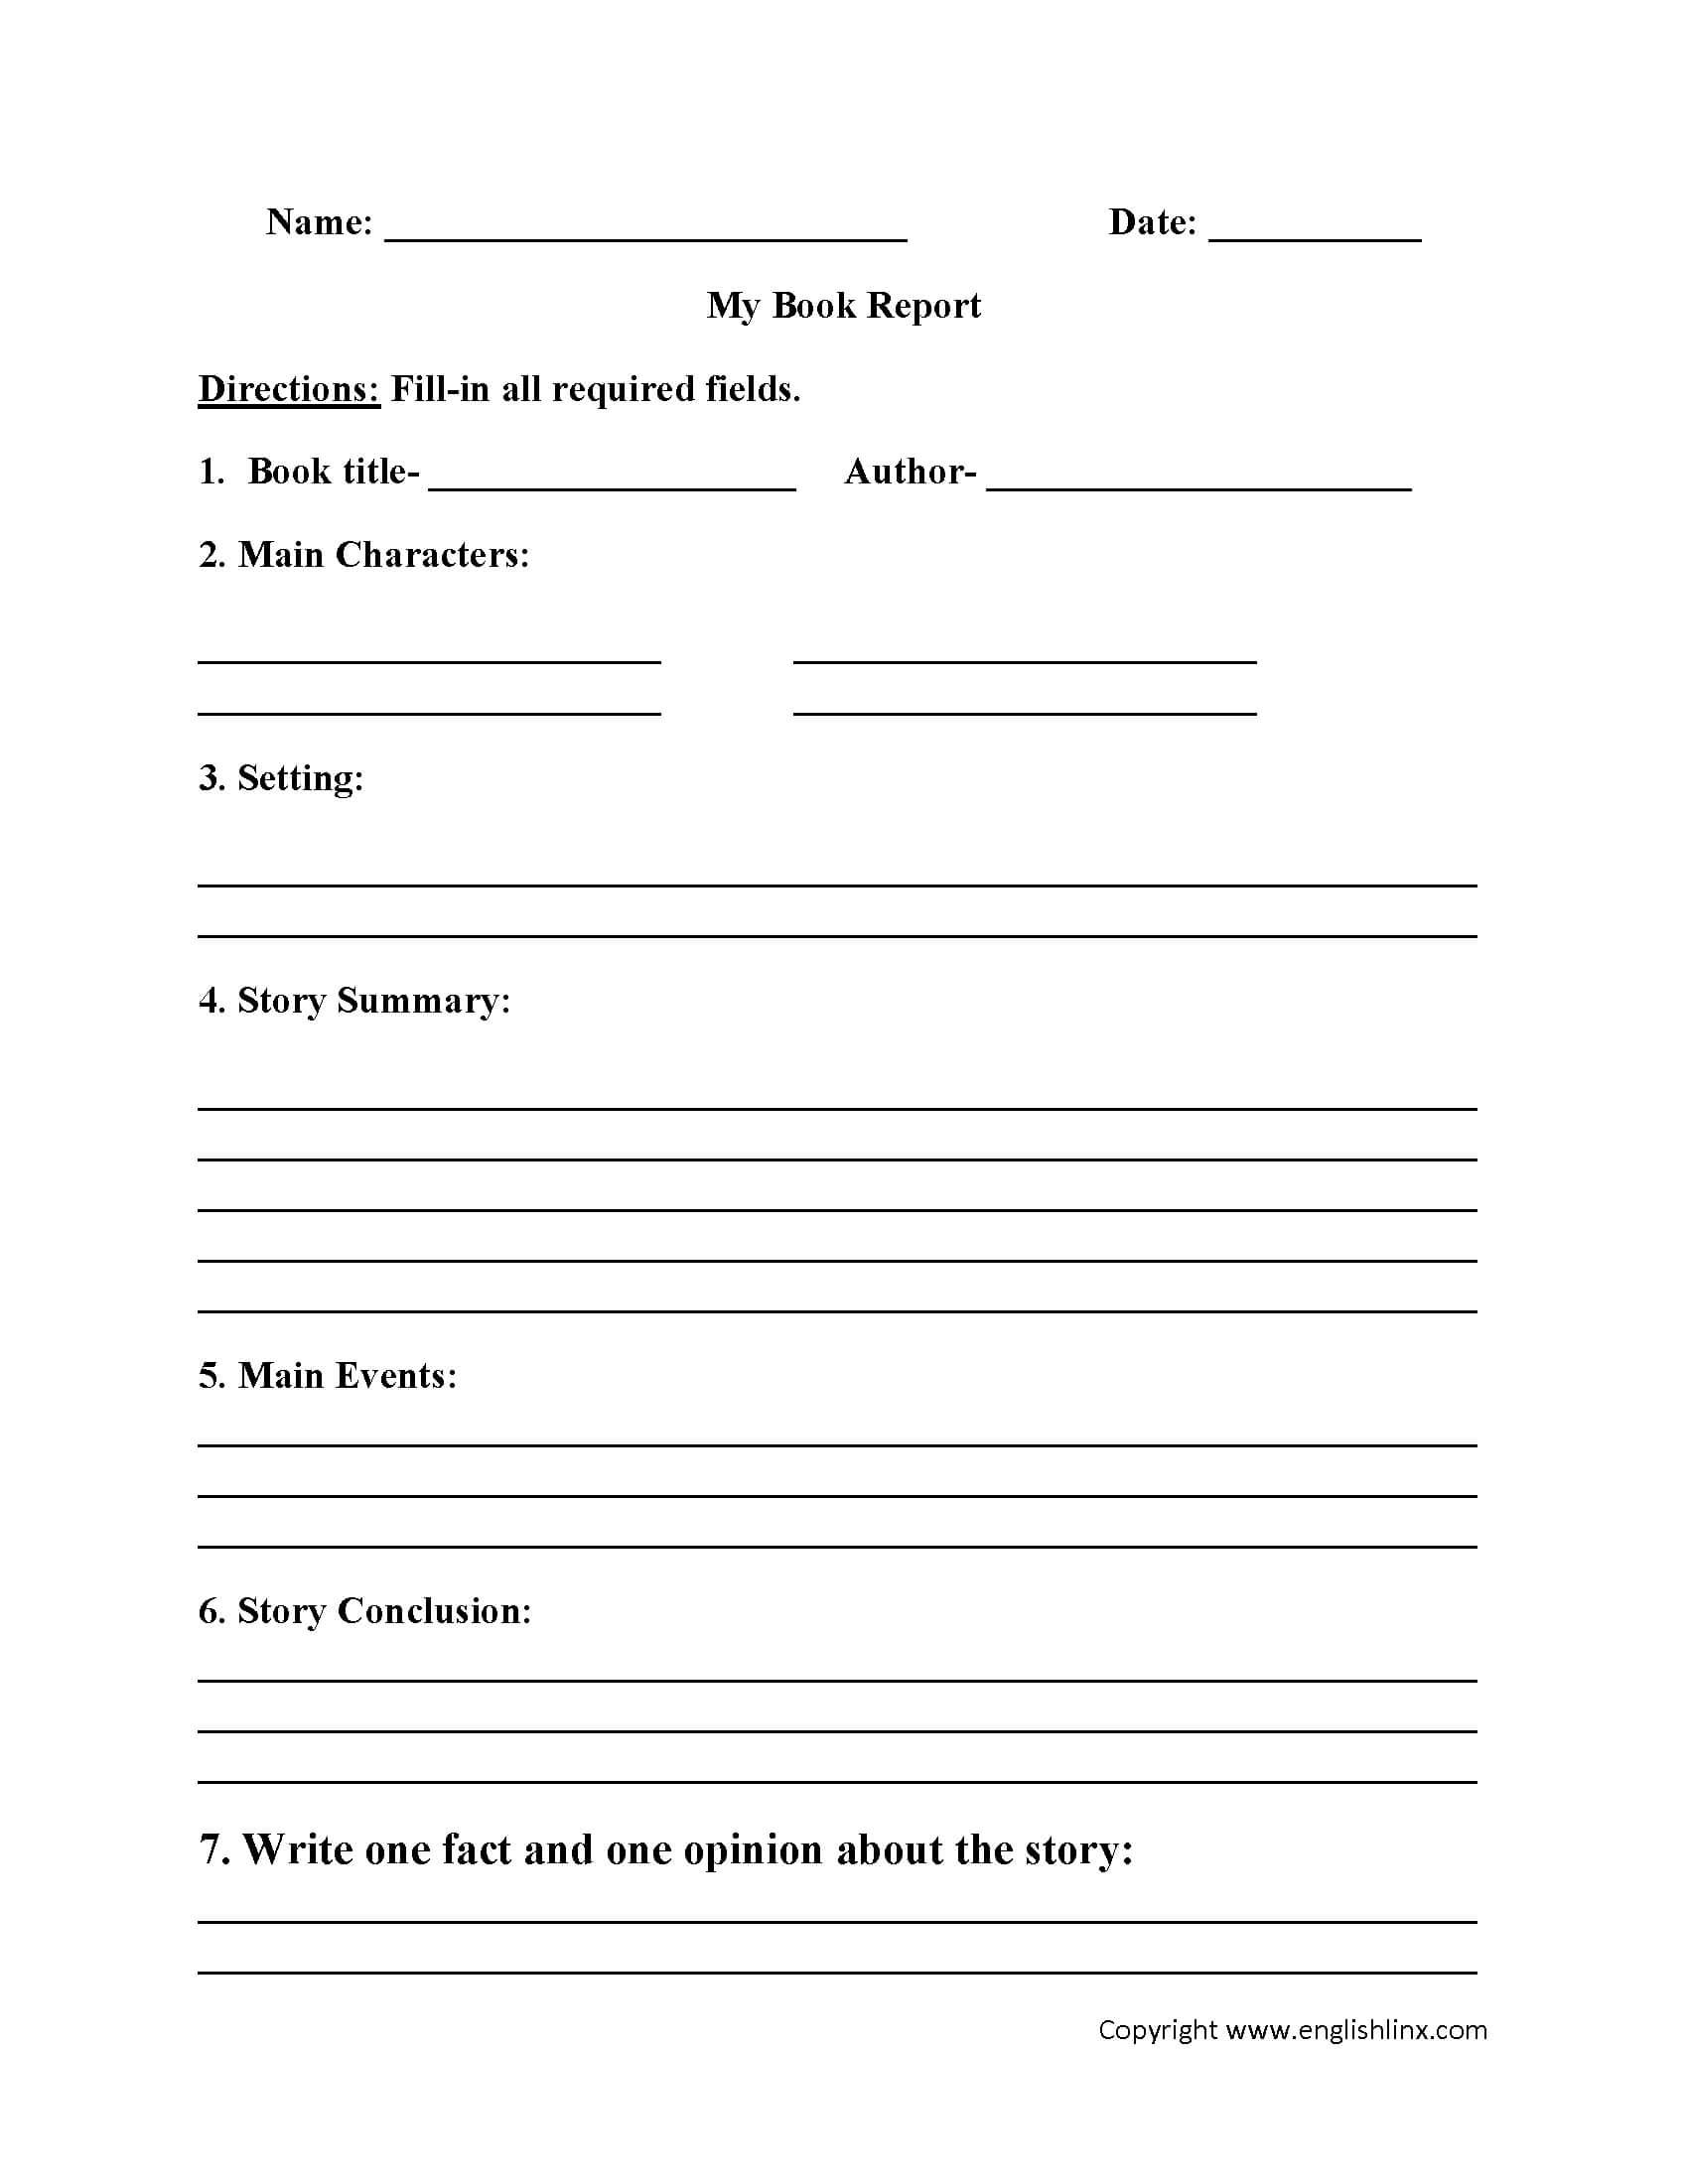 Englishlinx | Book Report Worksheets Pertaining To Book Report Template 5Th Grade